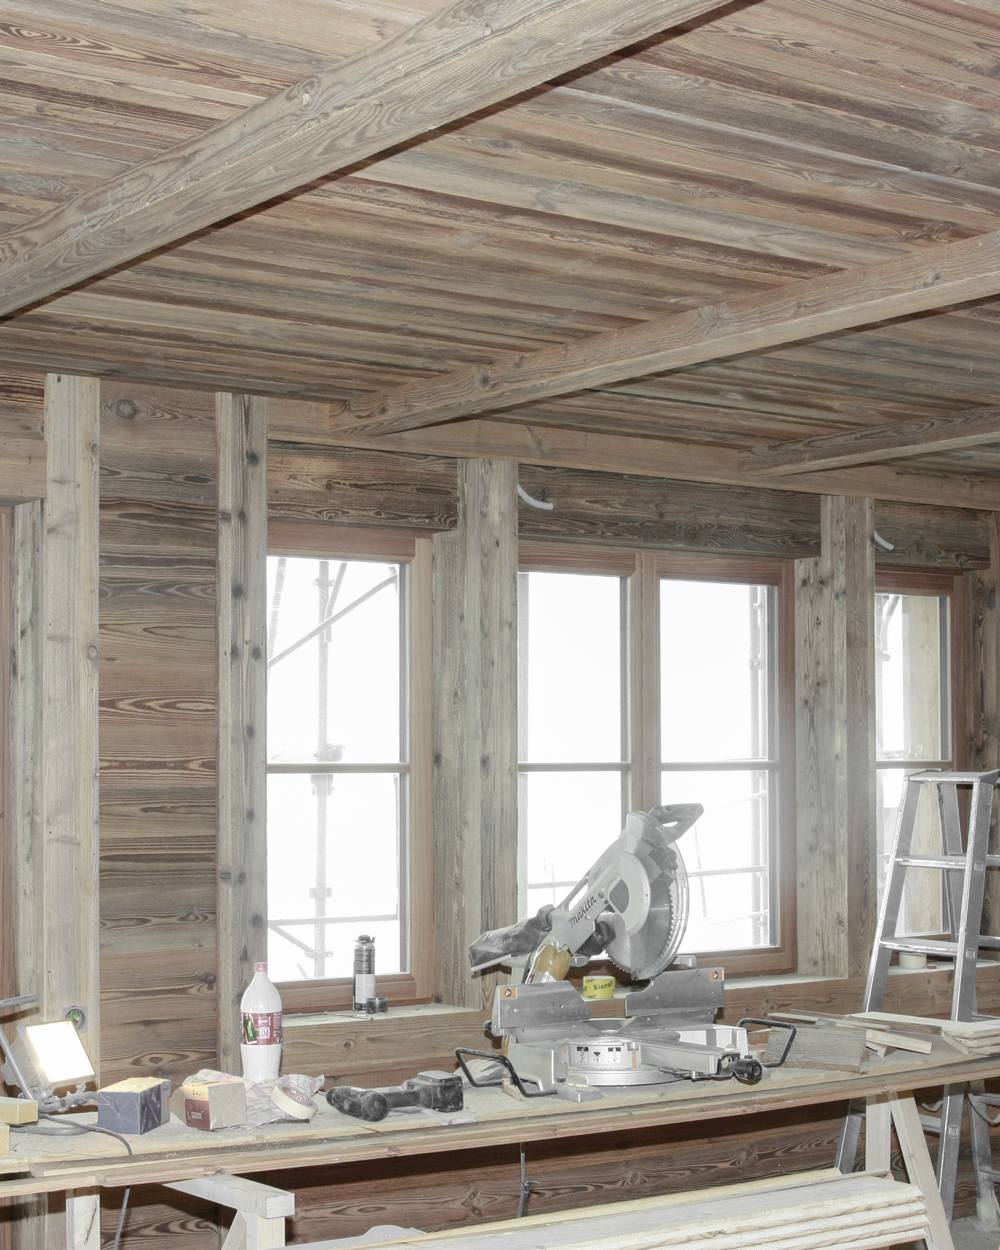 CSDK Saas Fee Construction Inte%CC%81rieur Vieux Bois 2 - Authentic Chalets - Old Wood - CSDK Saas Fee Construction Inte%CC%81rieur Vieux Bois 2